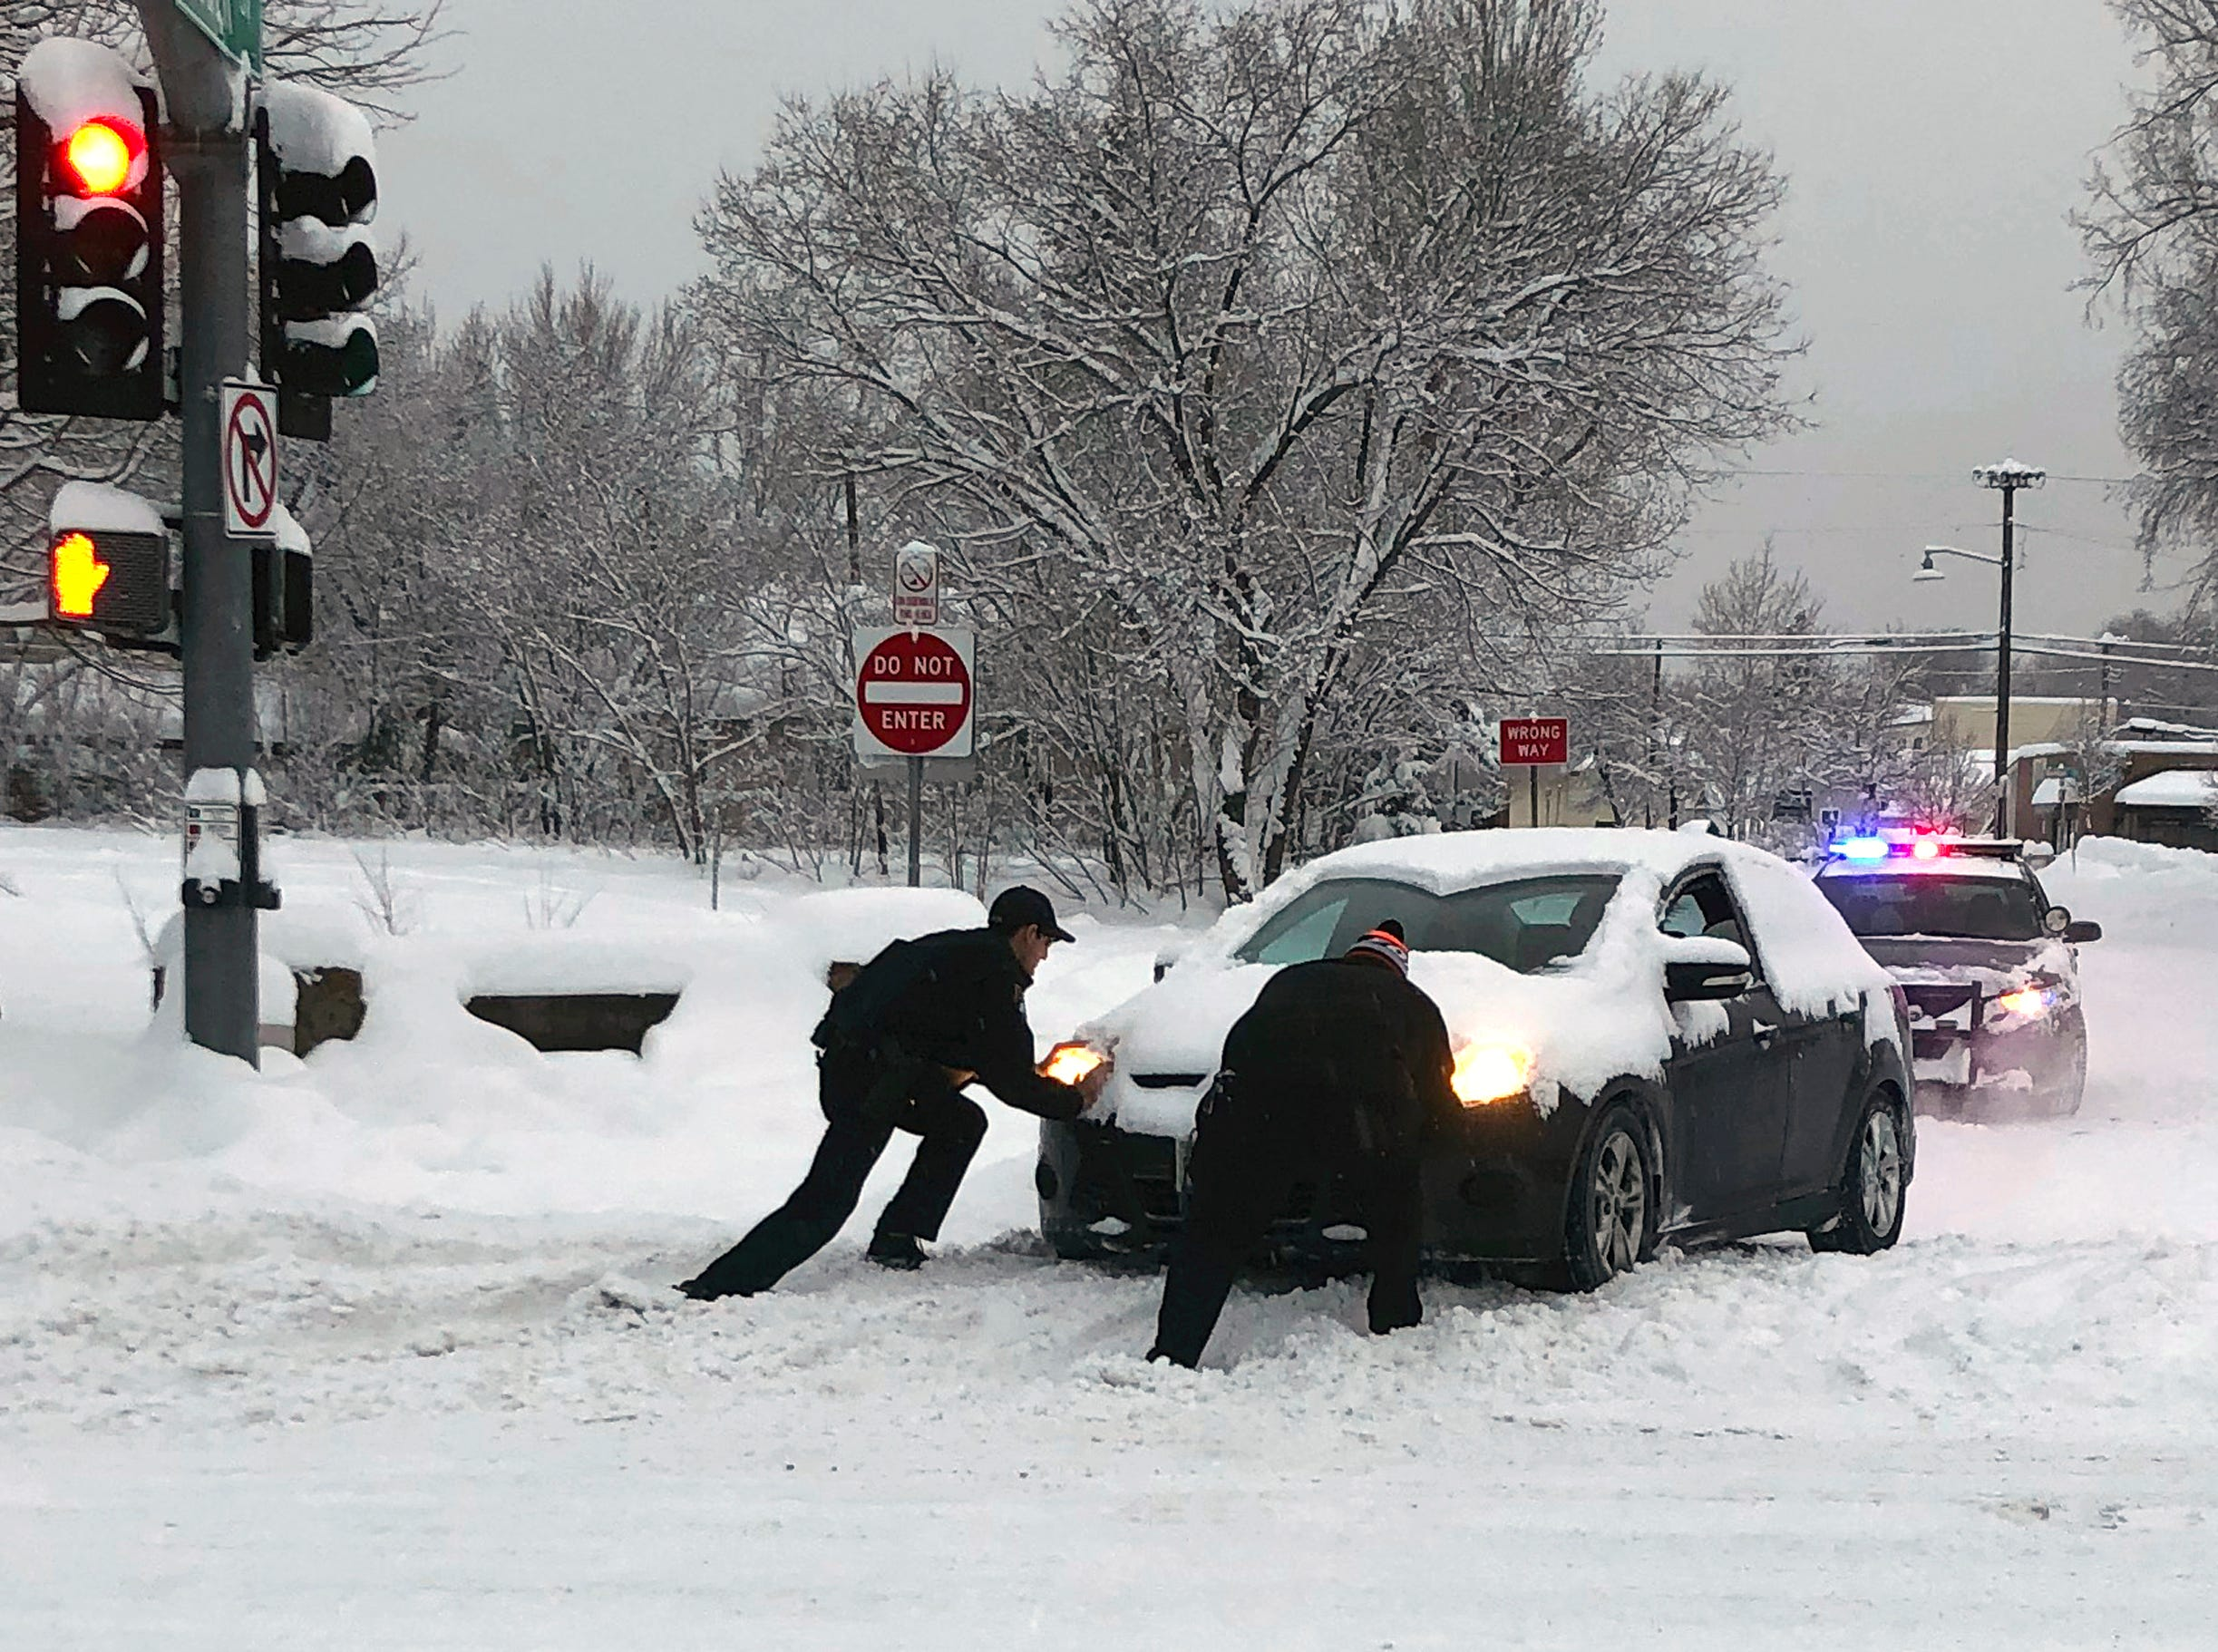 "This photo provided by the Flagstaff, Ariz., Police Department shows a police officer, left, helping a motorist push a car stuck in snow in Flagstaff Friday morning, Feb. 22, 2019. Schools, public libraries and businesses remained closed for a second day Friday amid a major, record-breaking storm in north-central Arizona. Snow fell Thursday at 3 to 4 inches (7.6 to 10.2 centimeters) an hour in what the National Weather Service characterized as ""not your average"" storm. The heaviest precipitation was pushing further into eastern Arizona before the storm moves out over the weekend, leaving temperatures at or below freezing."